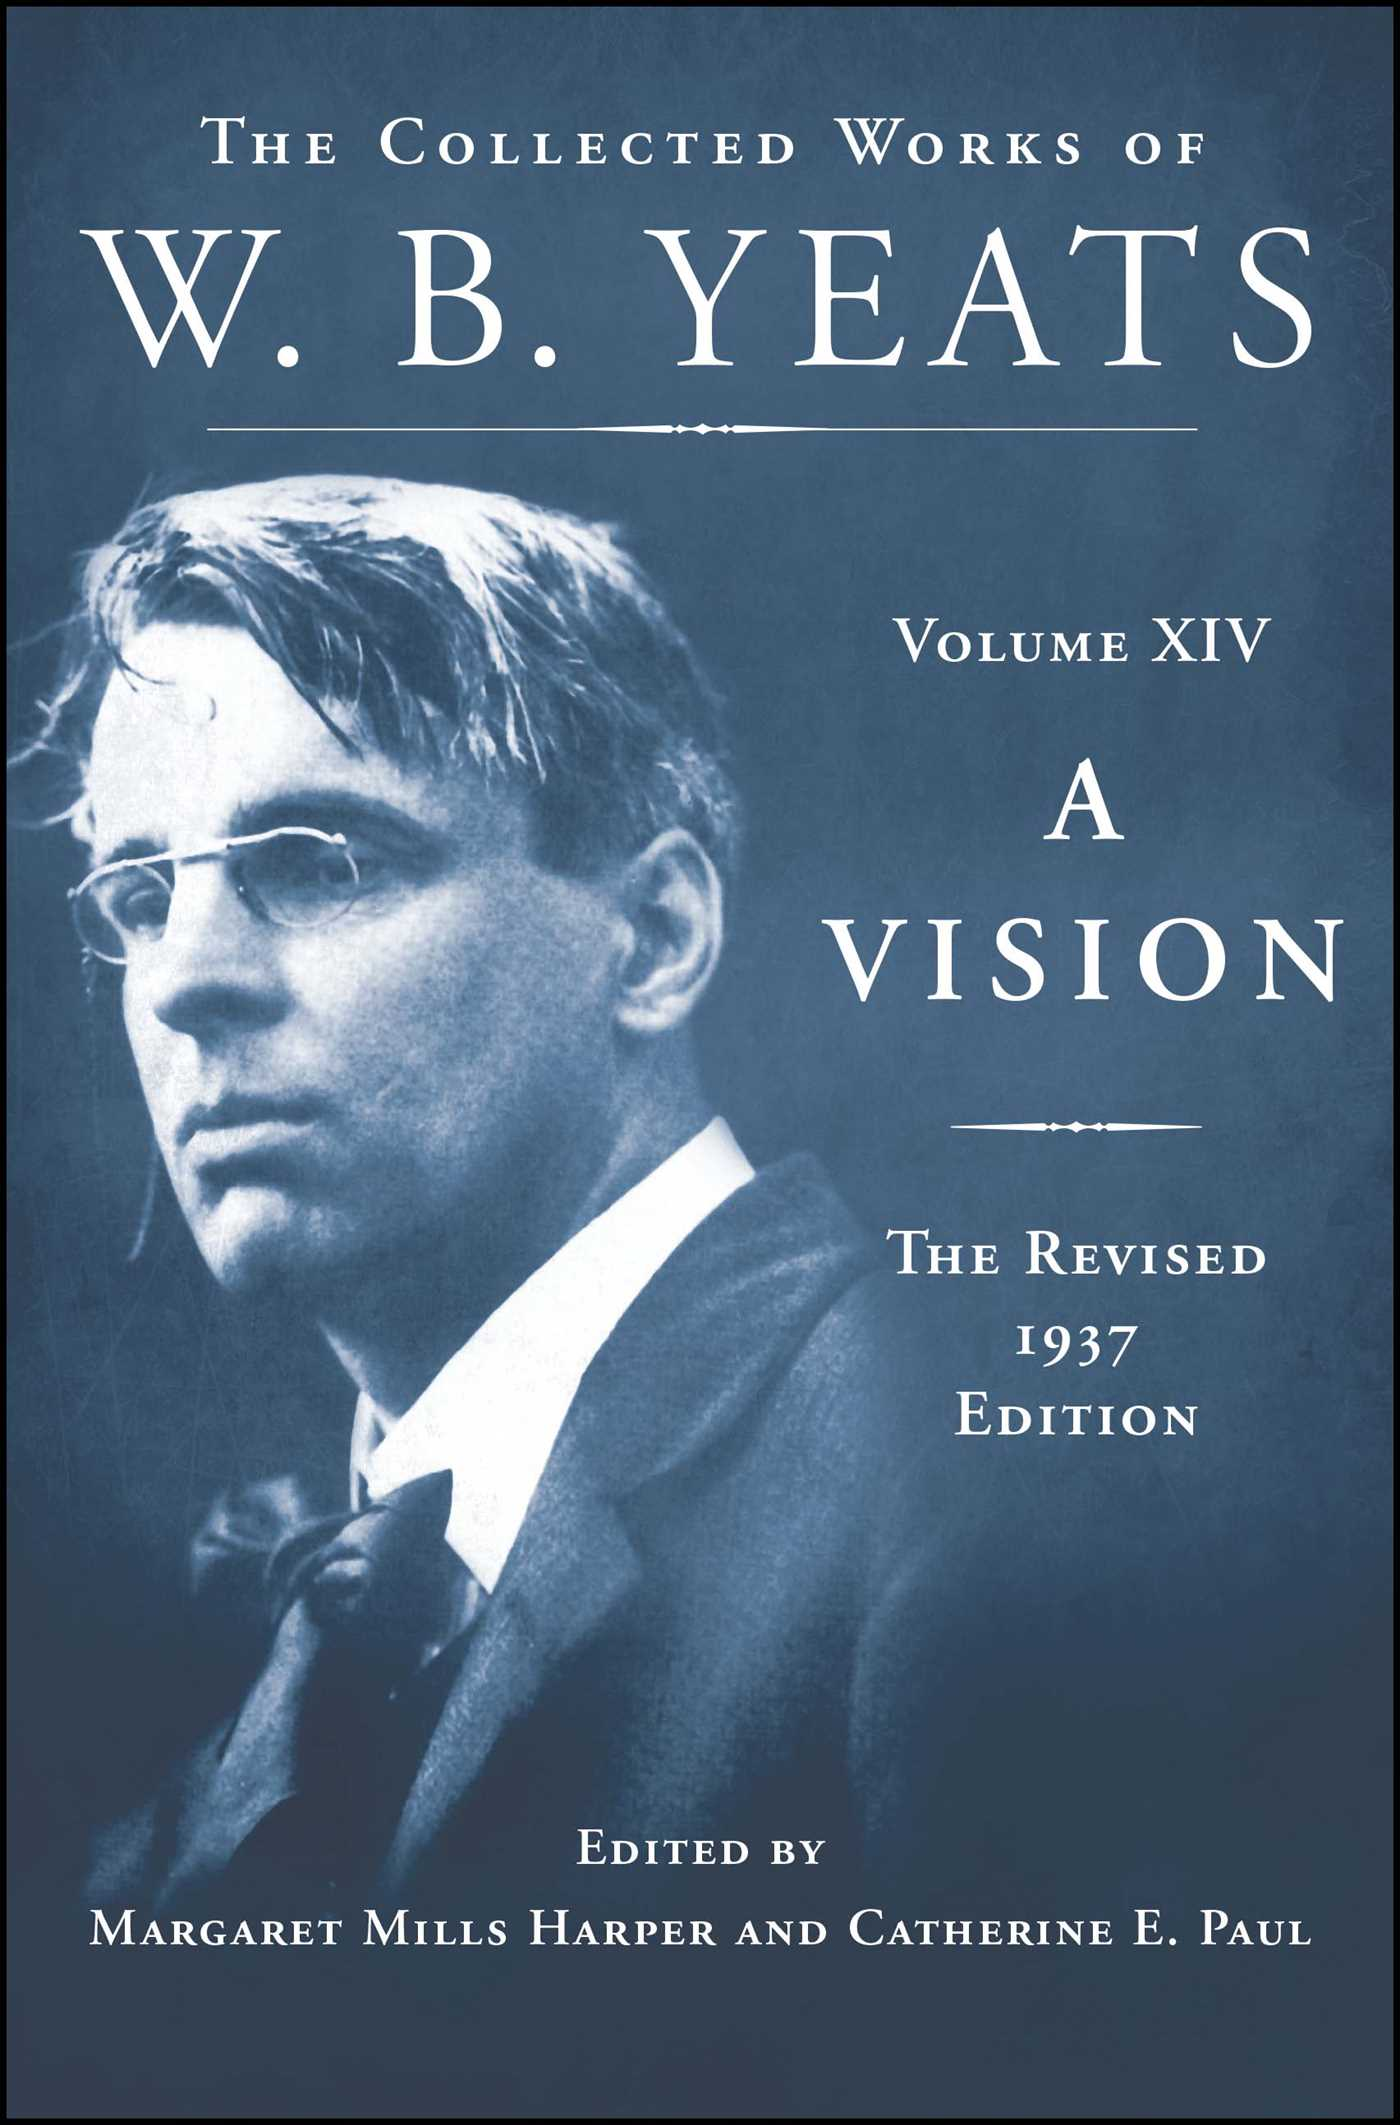 A-vision-the-revised-1937-edition-9780684807348_hr